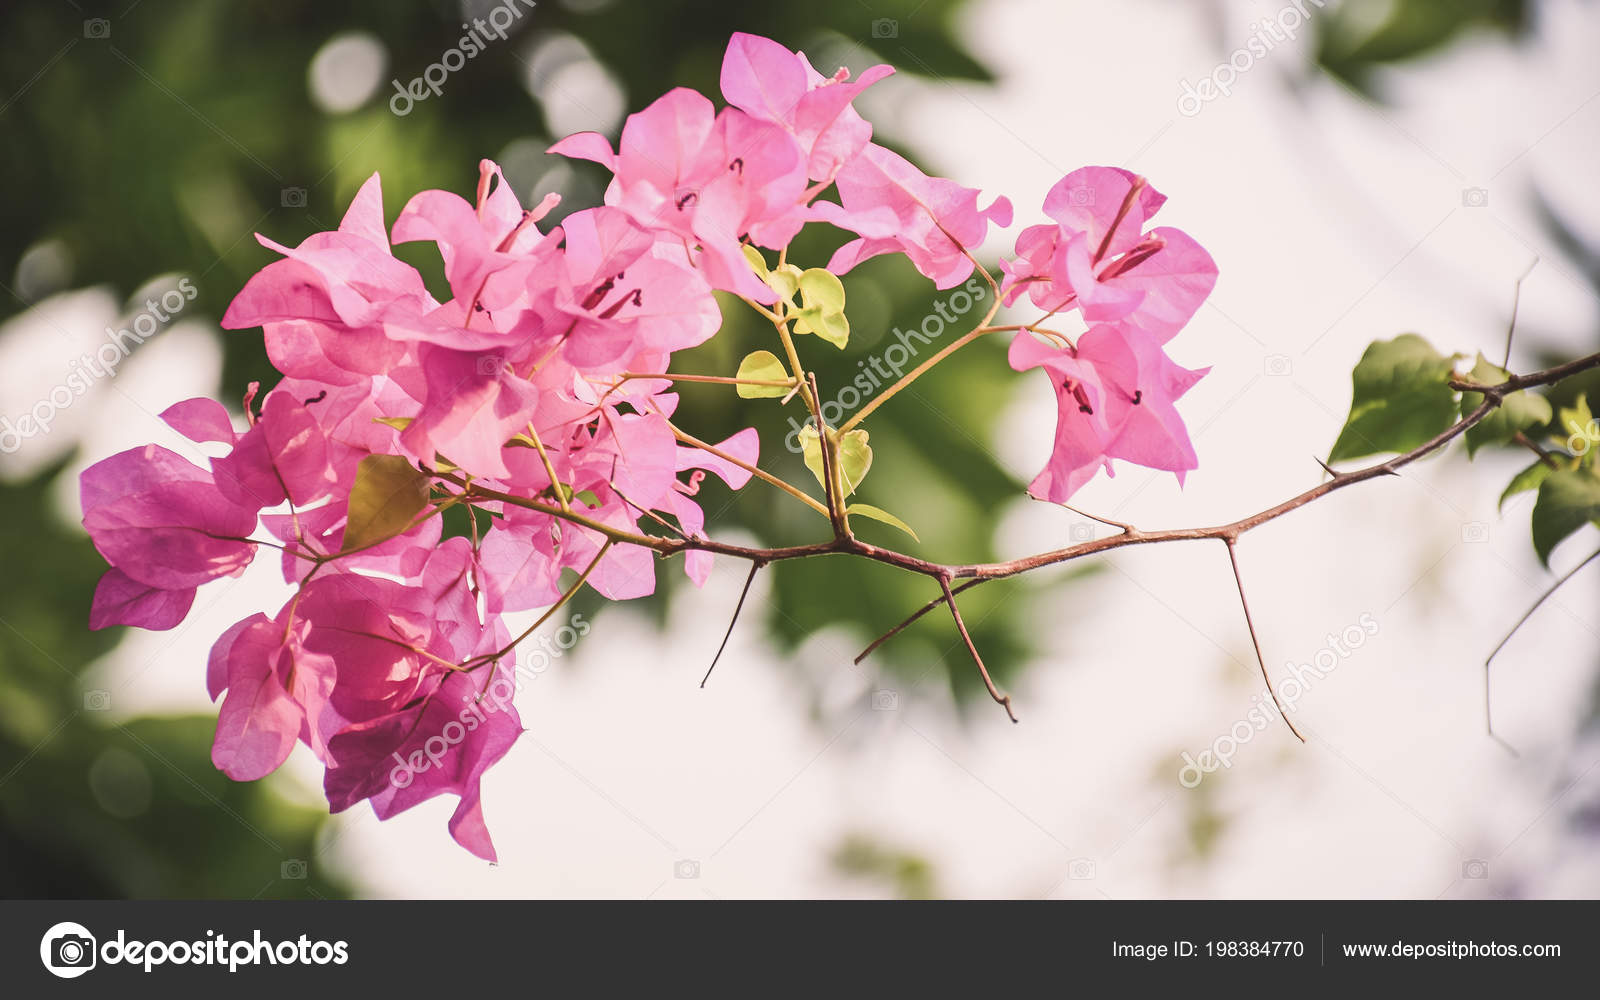 Beautiful pink flowers garden stock photo urickungail beautiful pink flowers in the garden photo by urickungail izmirmasajfo